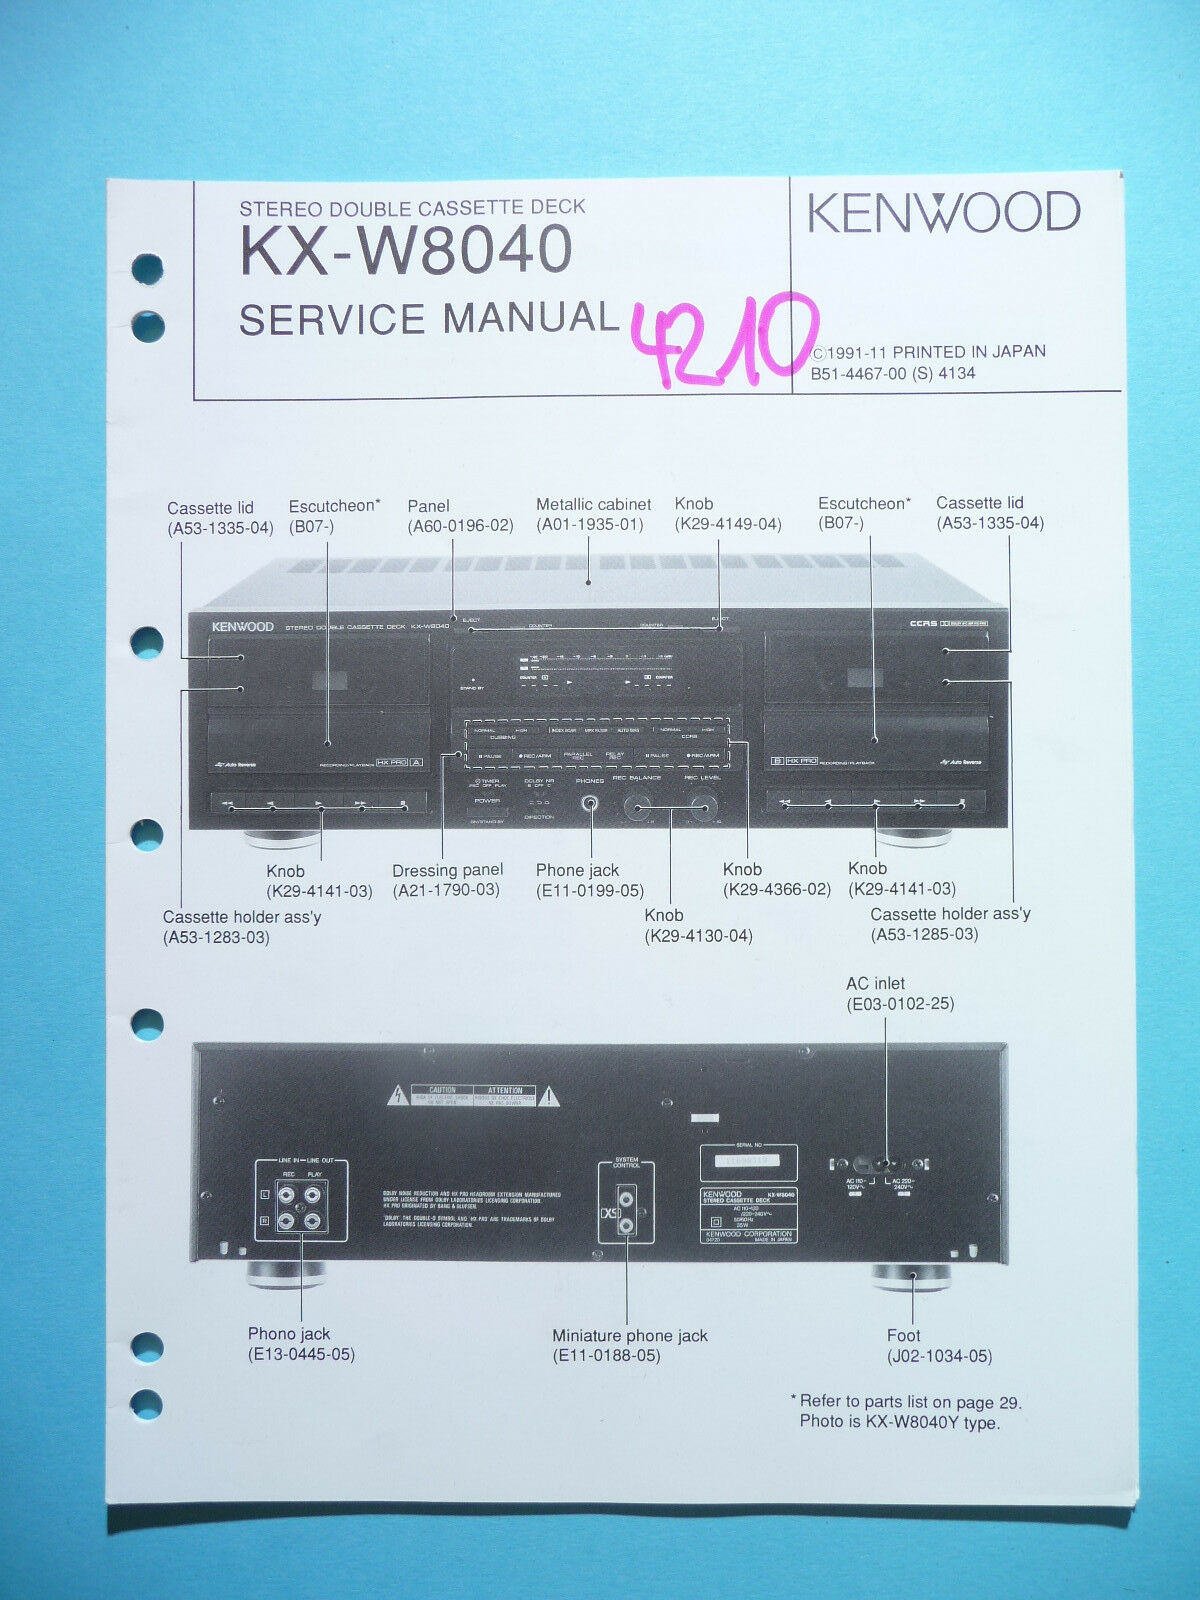 Service Manual Instructions for Kenwood KX-W8040, Original 1 of 1Only 1  available ...